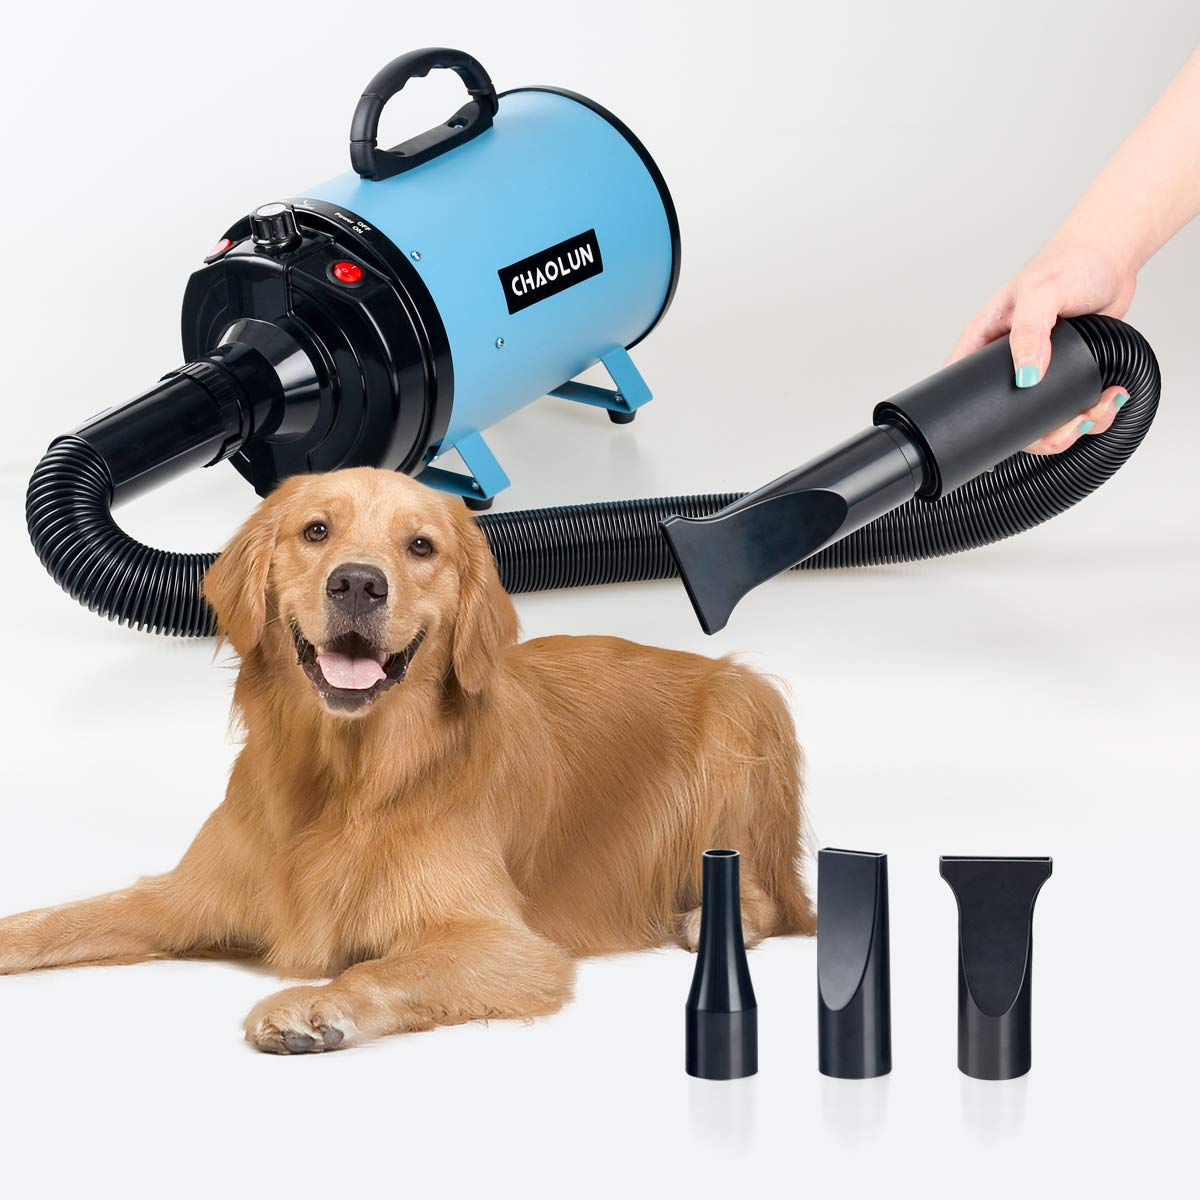 CHAOLUN High Velocity Pet Hair Dryer - Blower Grooming Dryer with Heater Dogs & Cats, 3.2HP 2400W Powerful Blow Force, Stepless Adjustable Speed, Reduce Noise, Heat Insulation, Sky